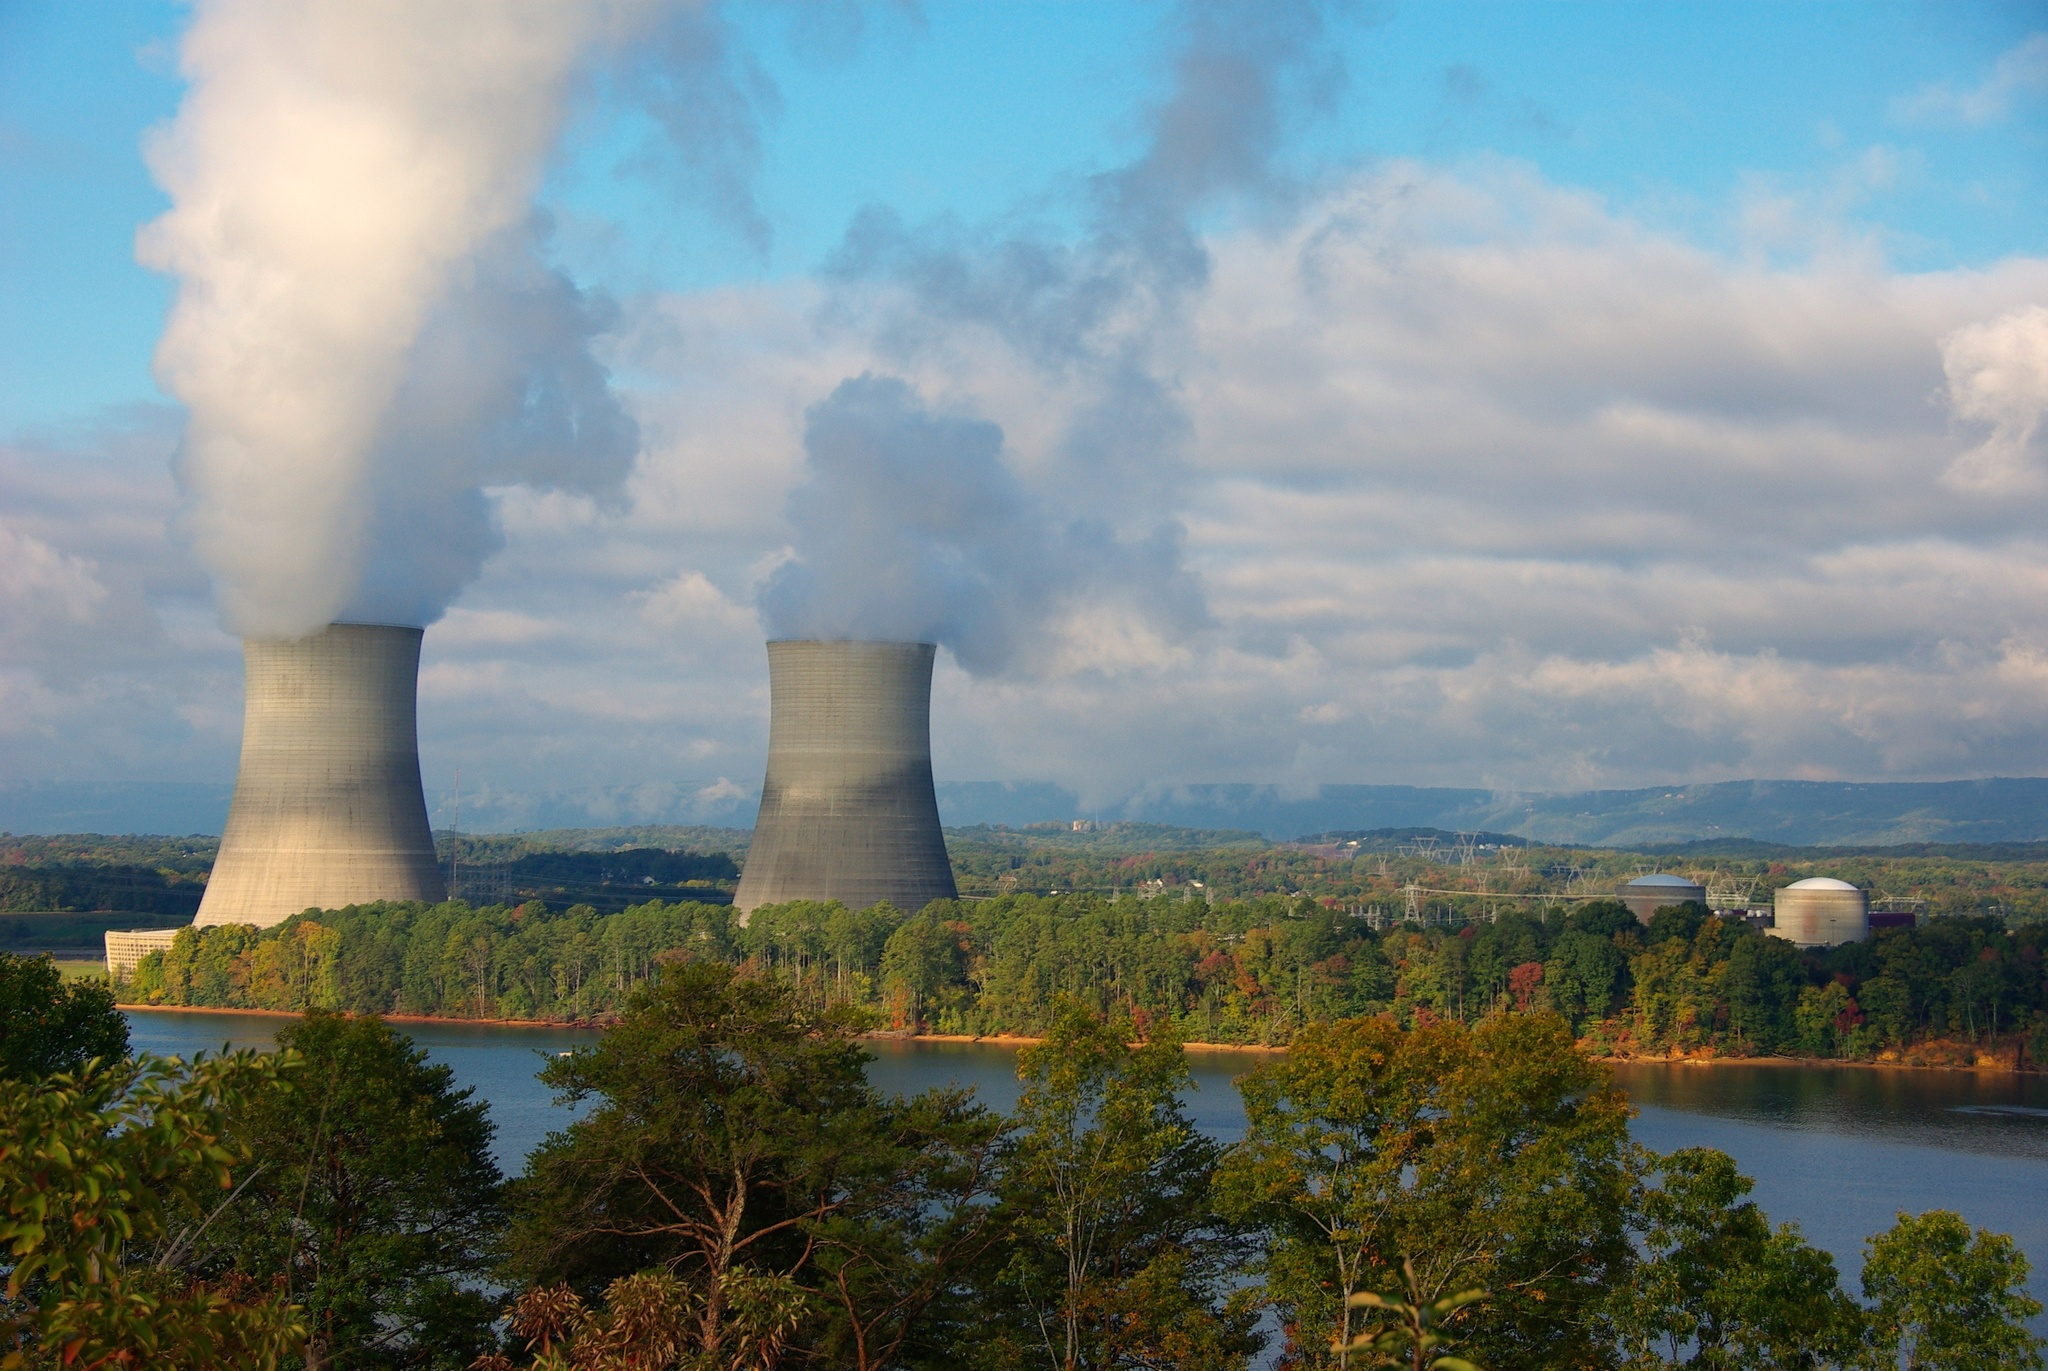 Reports: Nuclear firm Westinghouse Electric to file for bankruptcy next week